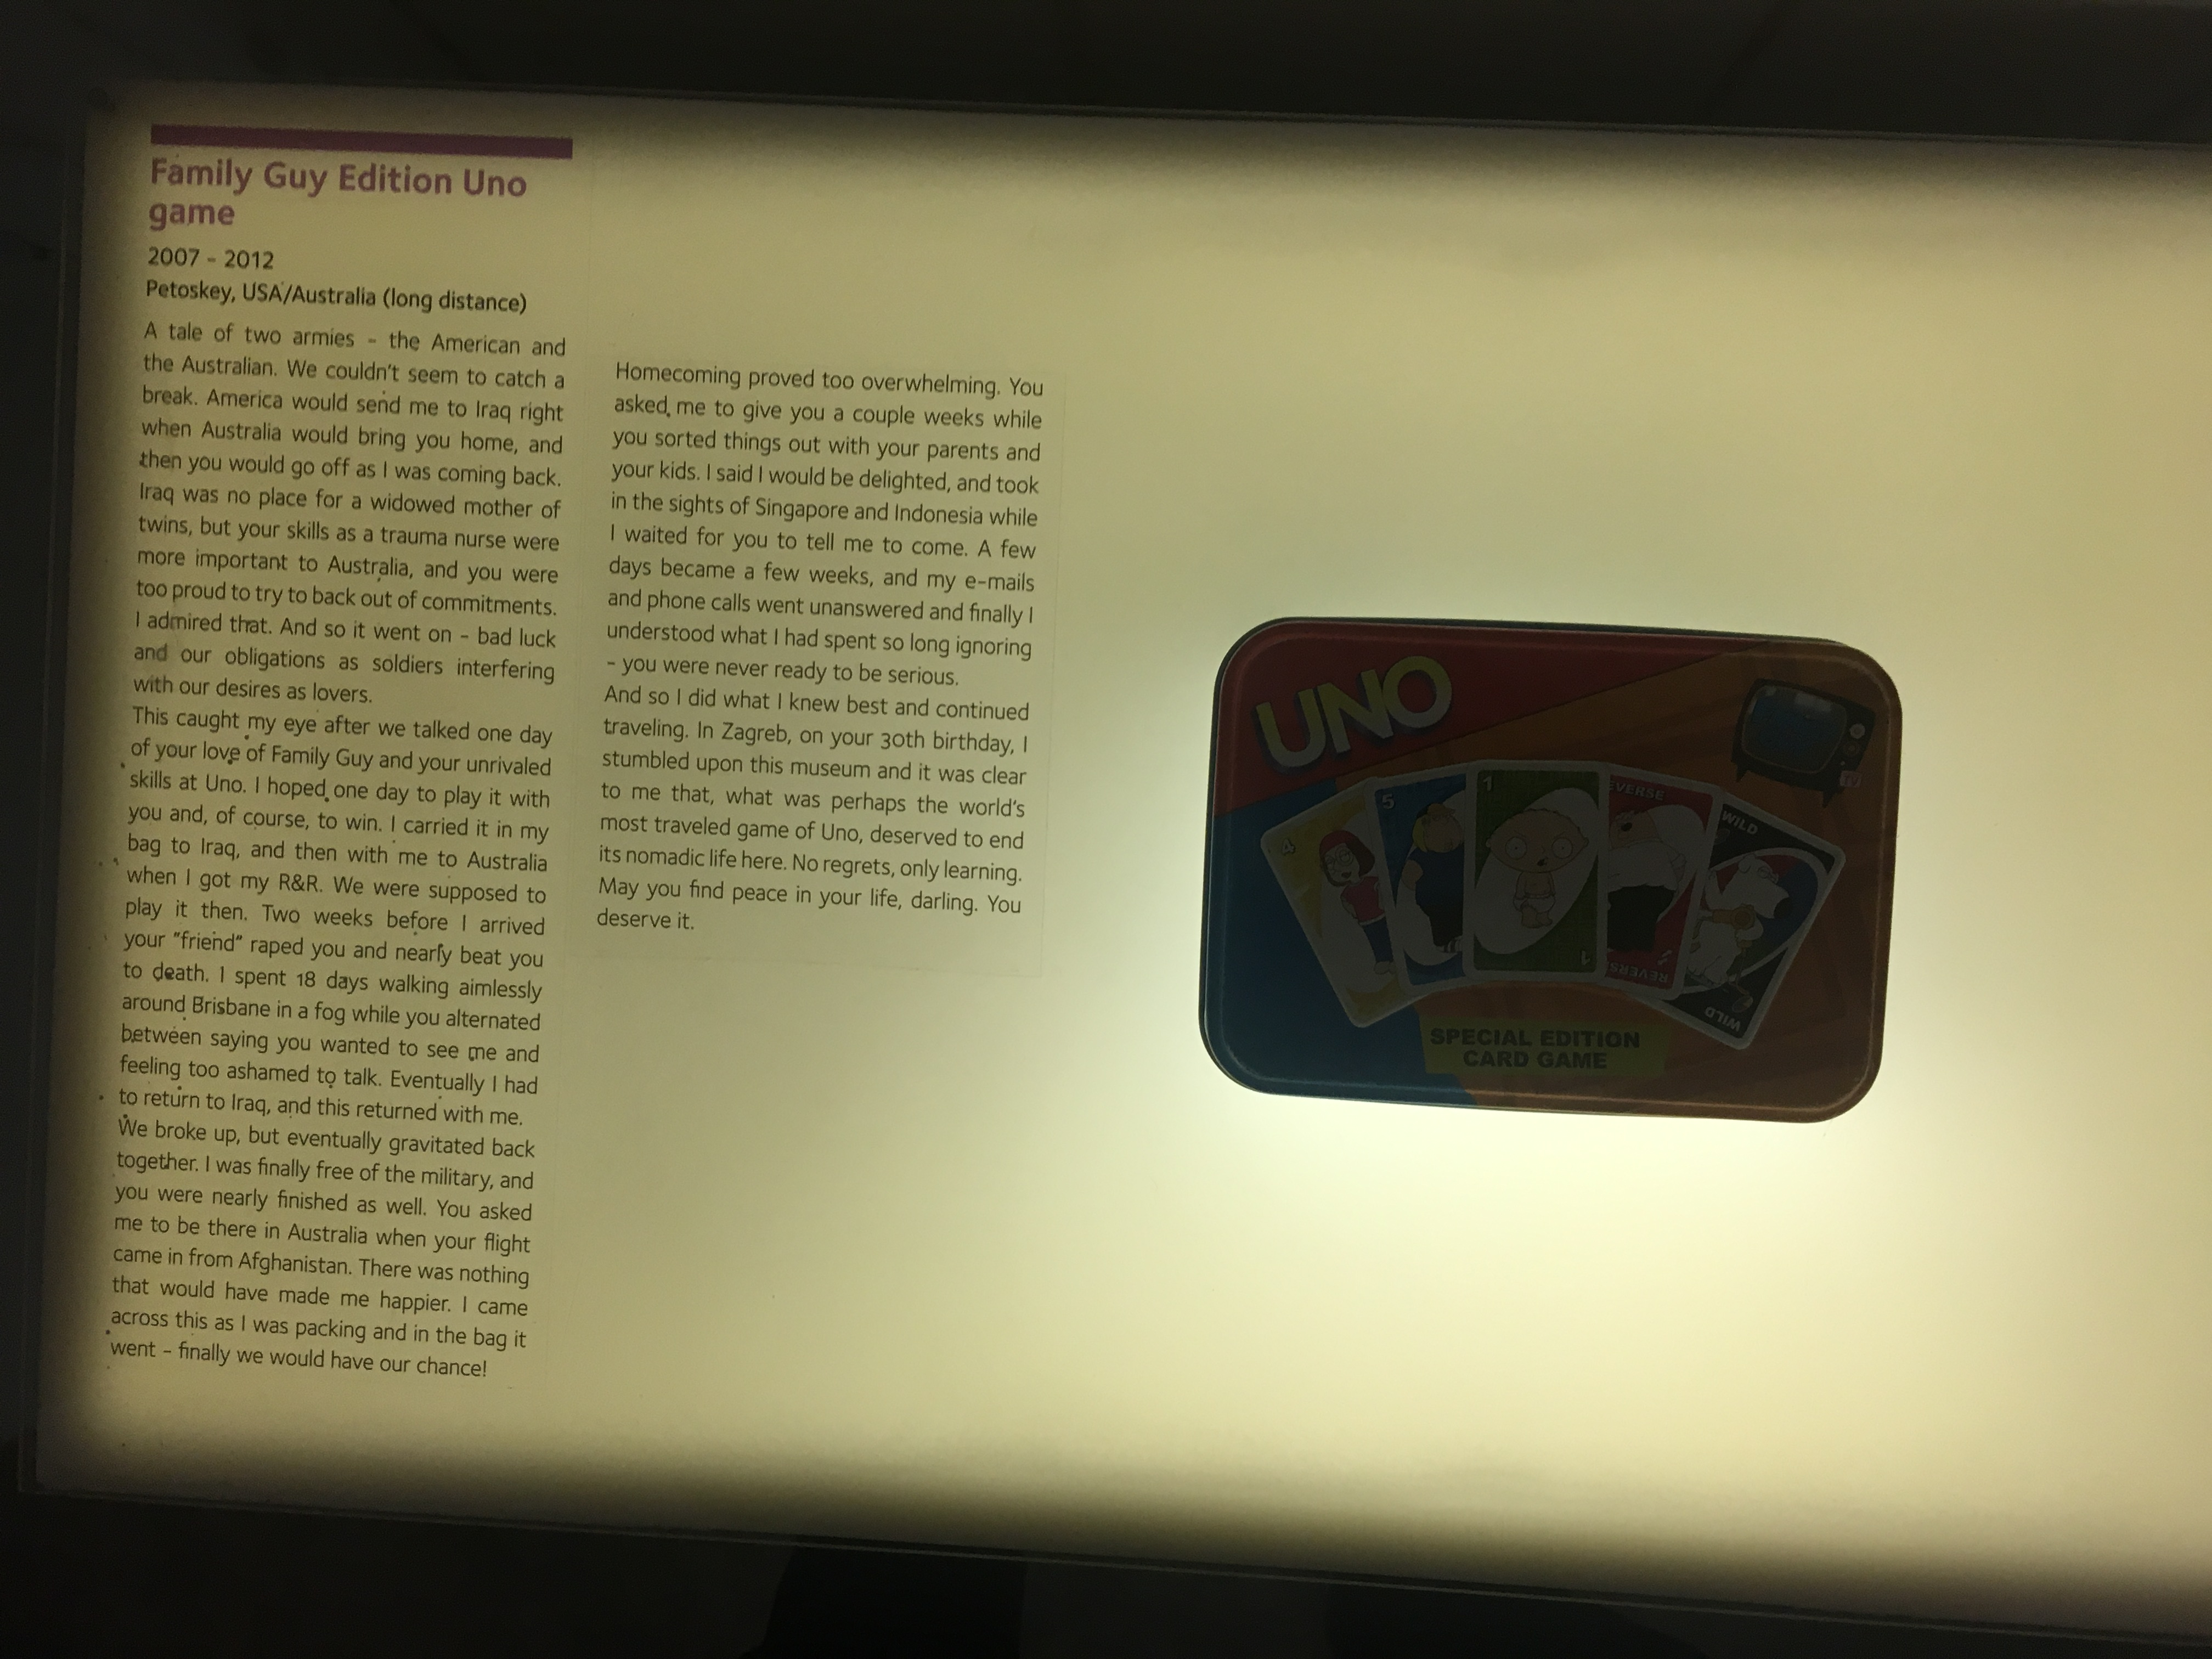 A Family Guy edition of the Uno card game, displayed alongside the love story of two soldiers. Photo by author of an exhibit in the Museum of Broken Relationships, Zagreb.